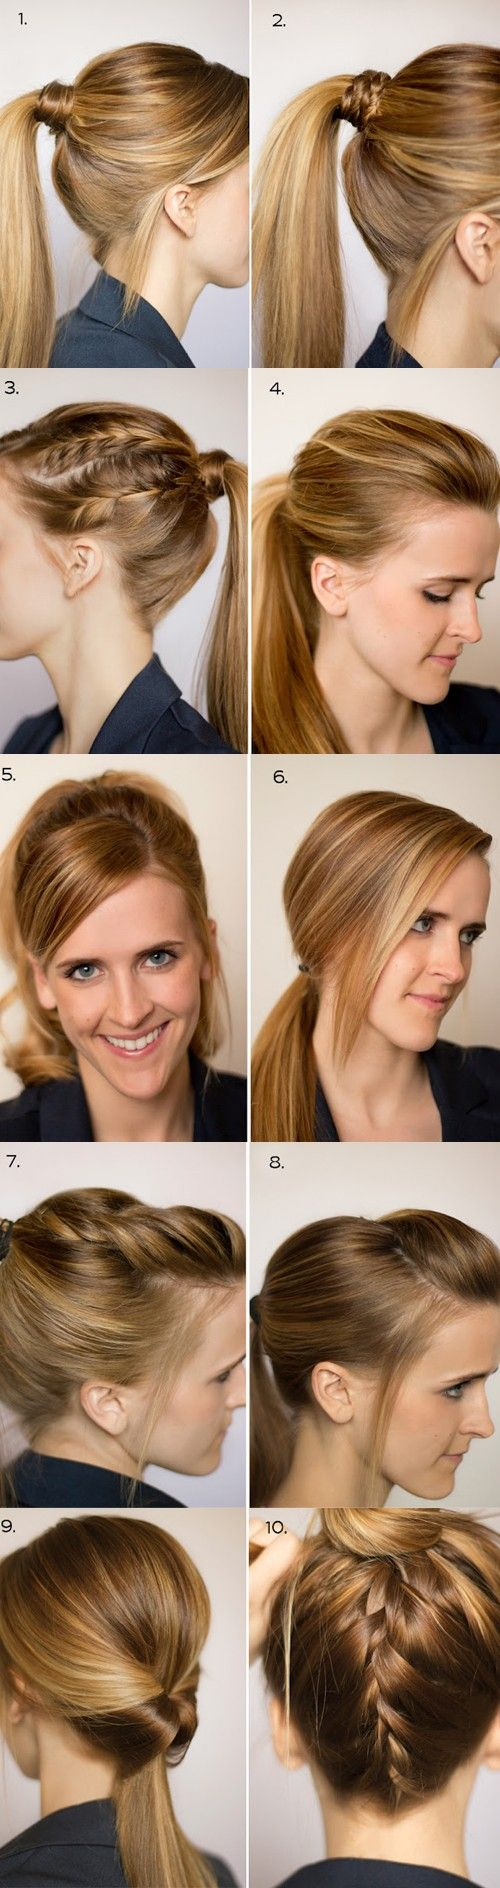 10 Different Ways To Wear A Ponytail pinned with Pinvolve